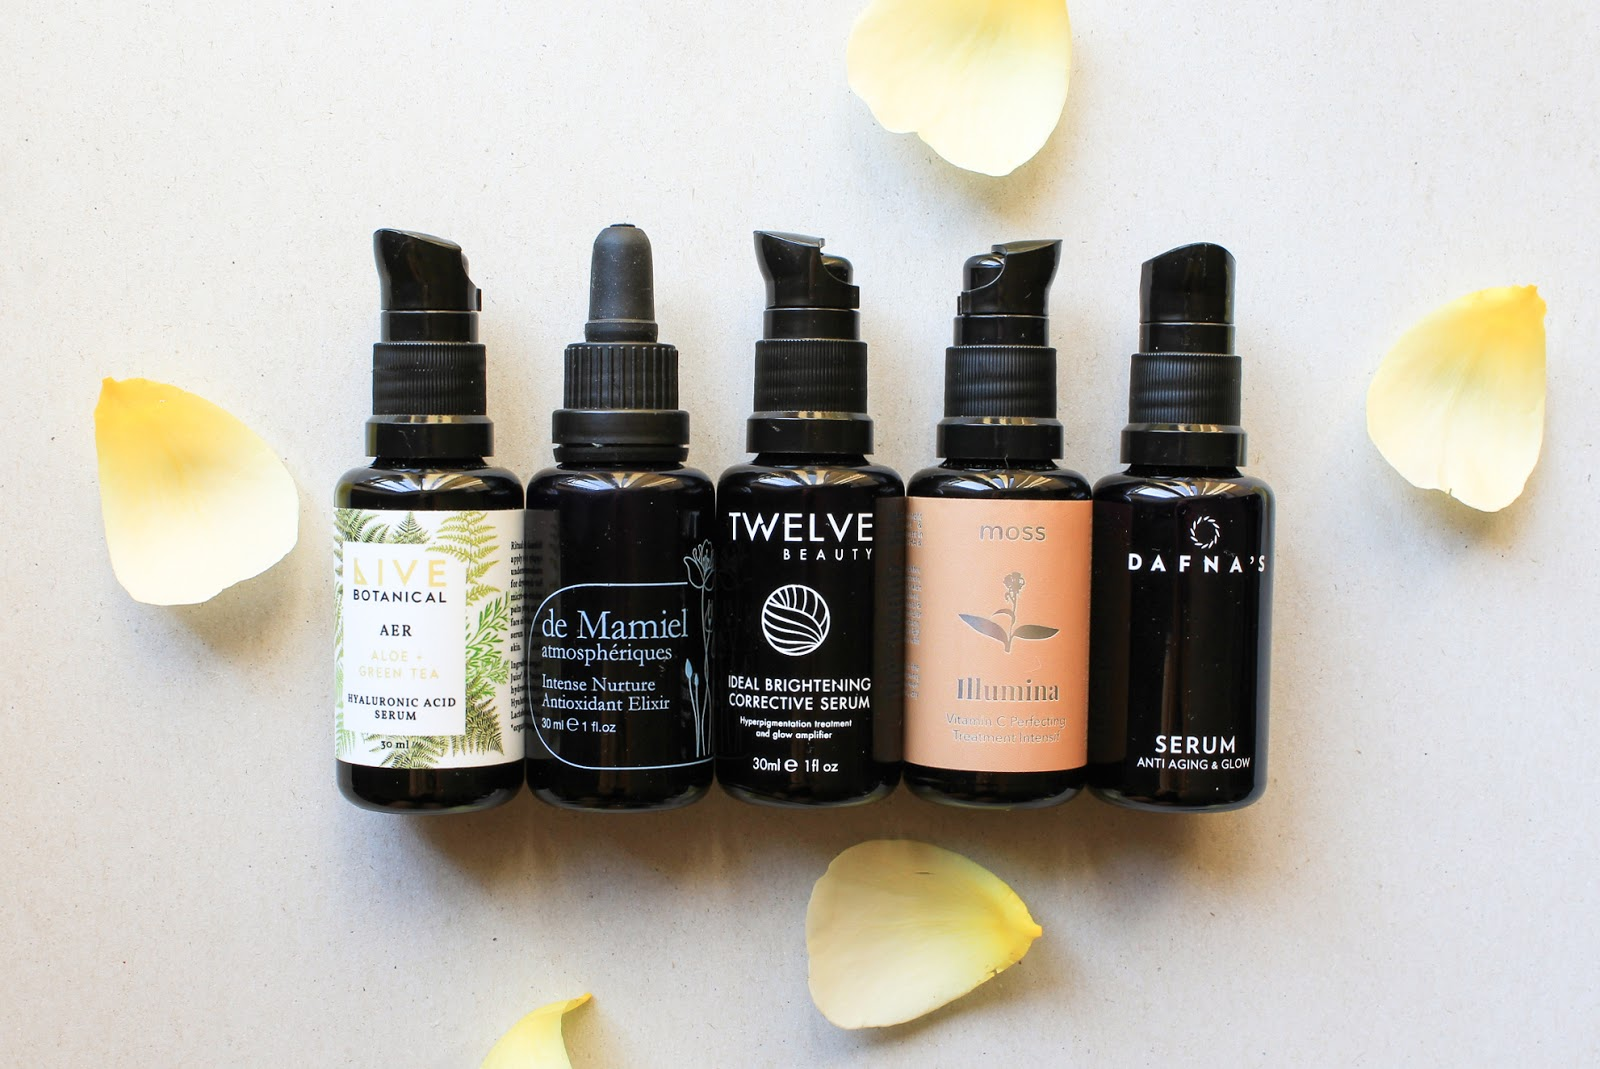 Natural and Organic Serums. Live Botanical, de Mamiel, Twelve Beauty, Moss Skincare, Dafna's Personal Skincare